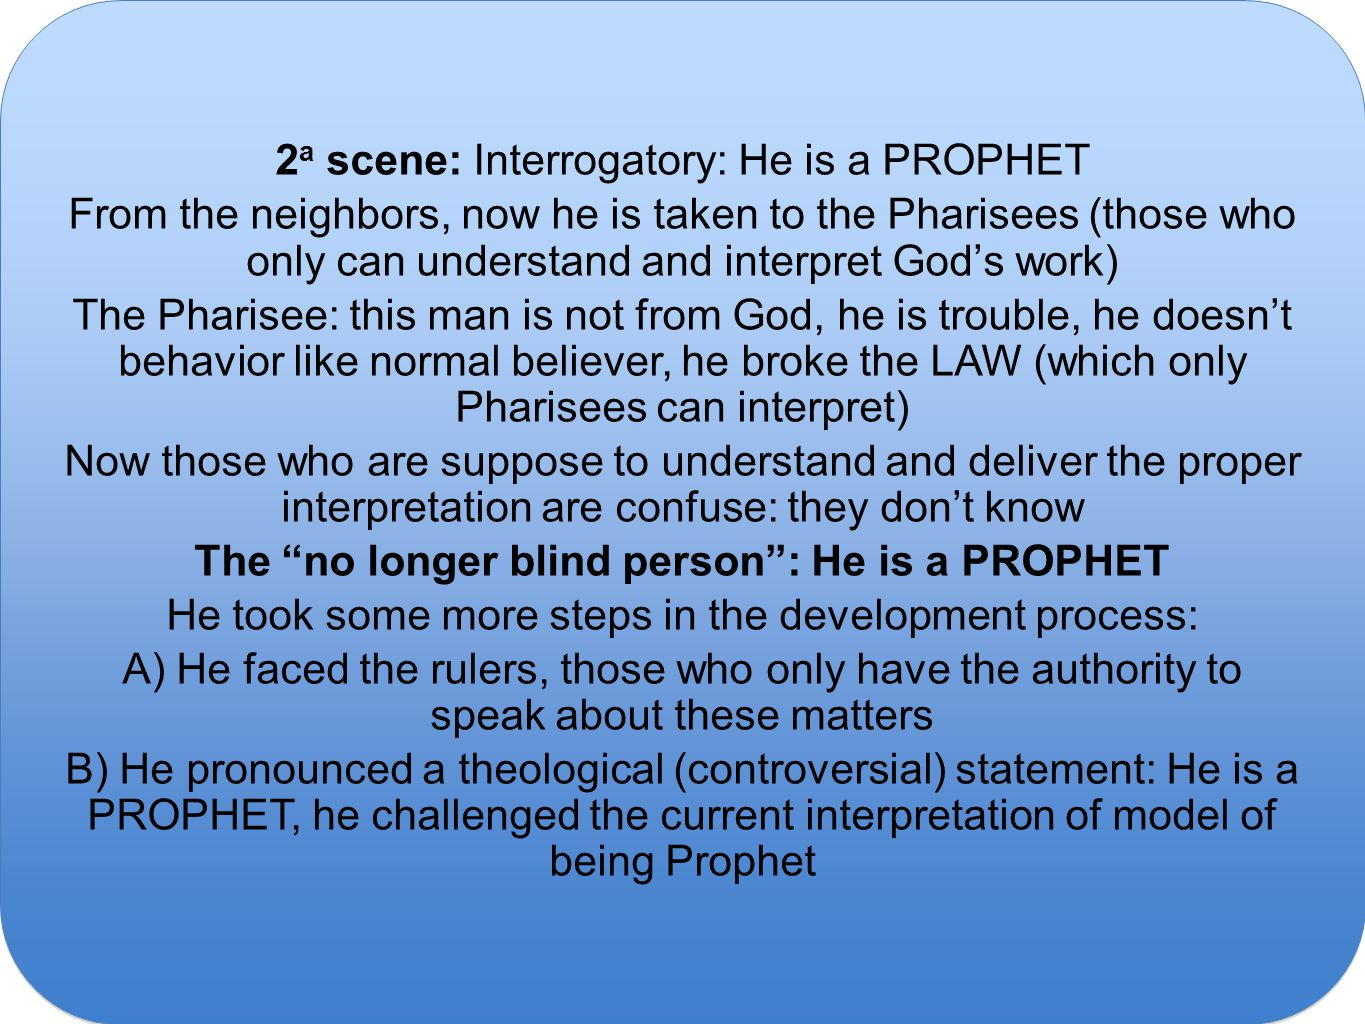 2 a scene: Interrogatory: He is a PROPHET From the neighbors, now he is taken to the Pharisees (those who only can understand and interpret God's work) The Pharisee: this man is not from God, he is trouble, he doesn't behavior like normal believer, he broke the LAW (which only Pharisees can interpret) Now those who are suppose to understand and deliver the proper interpretation are confuse: they don't know The no longer blind person : He is a PROPHET He took some more steps in the development process: A) He faced the rulers, those who only have the authority to speak about these matters B) He pronounced a theological (controversial) statement: He is a PROPHET, he challenged the current interpretation of model of being Prophet